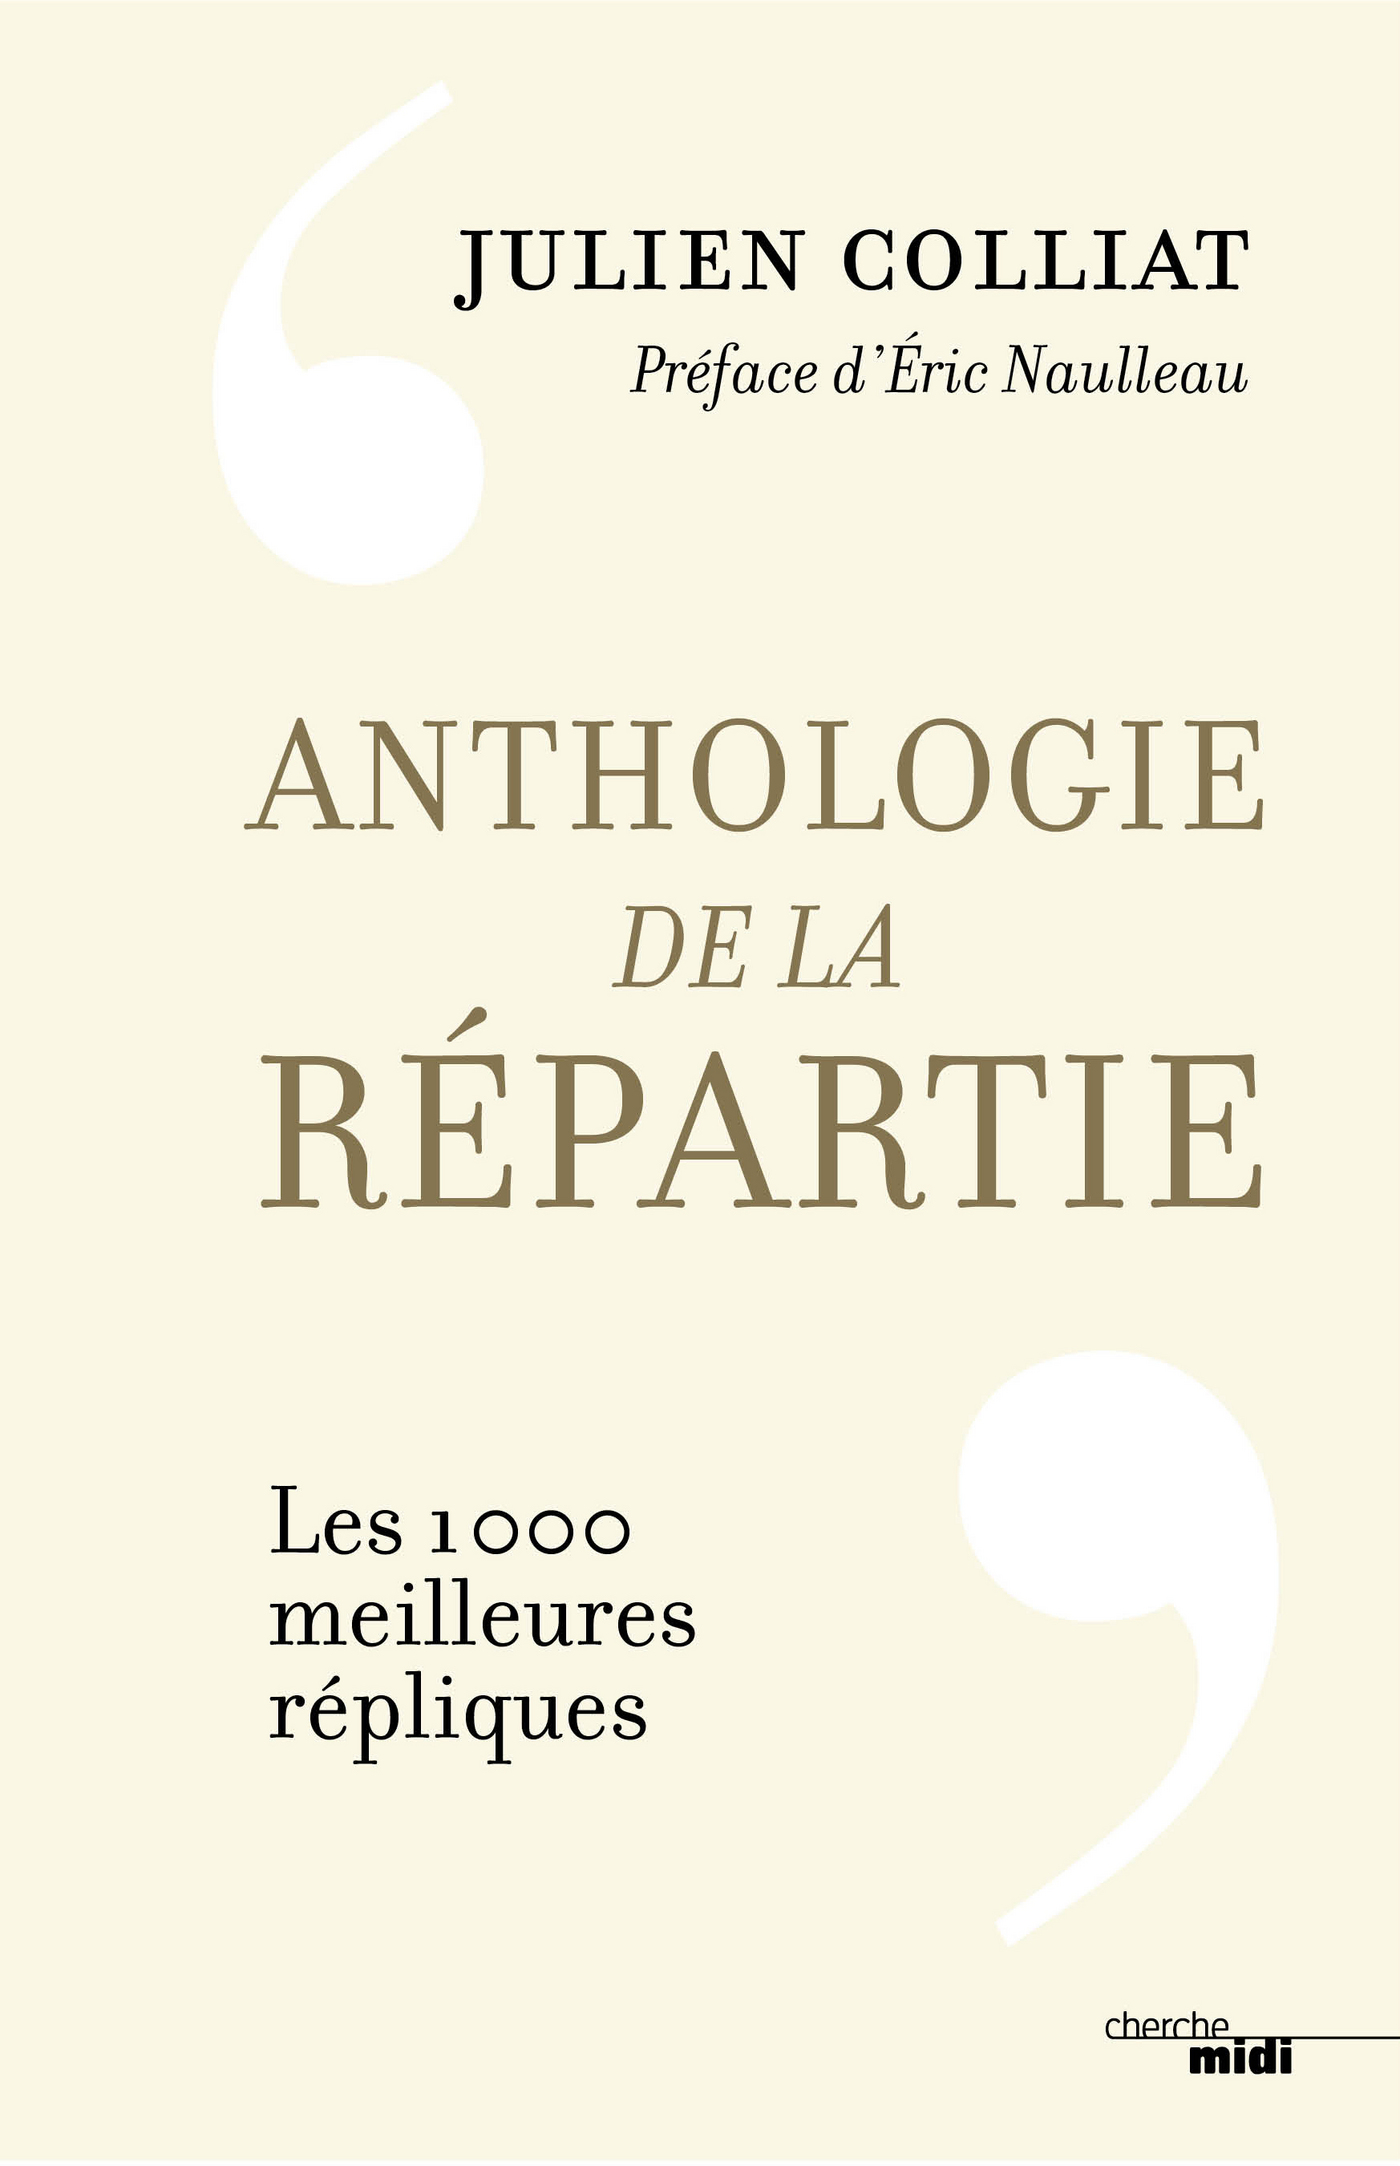 Anthologie de la répartie